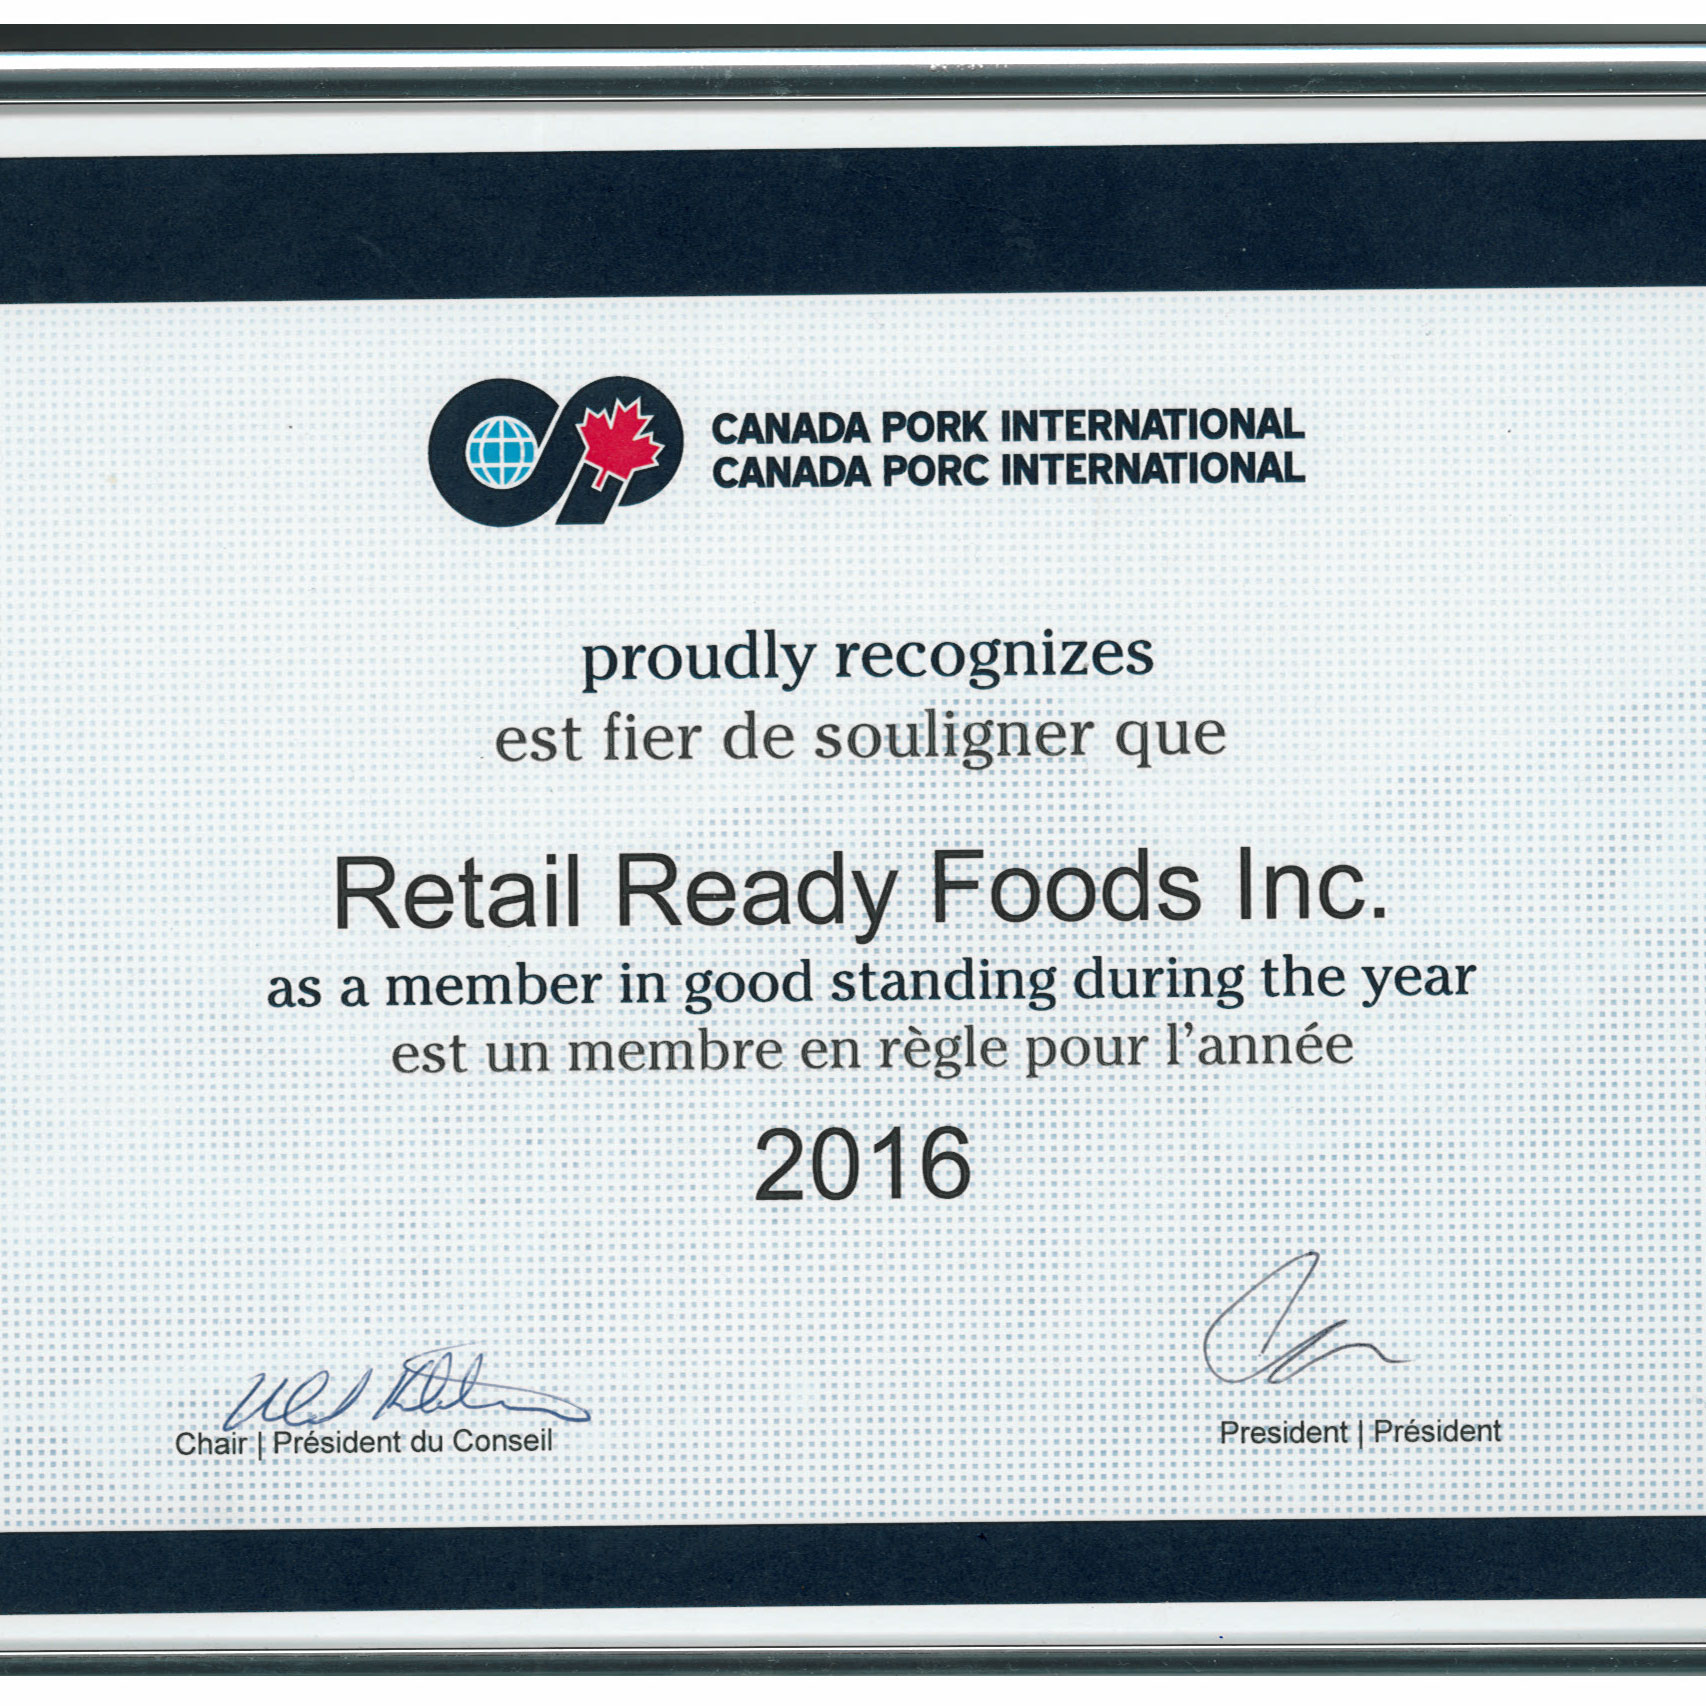 2016 – Recognized by Canada Pork International